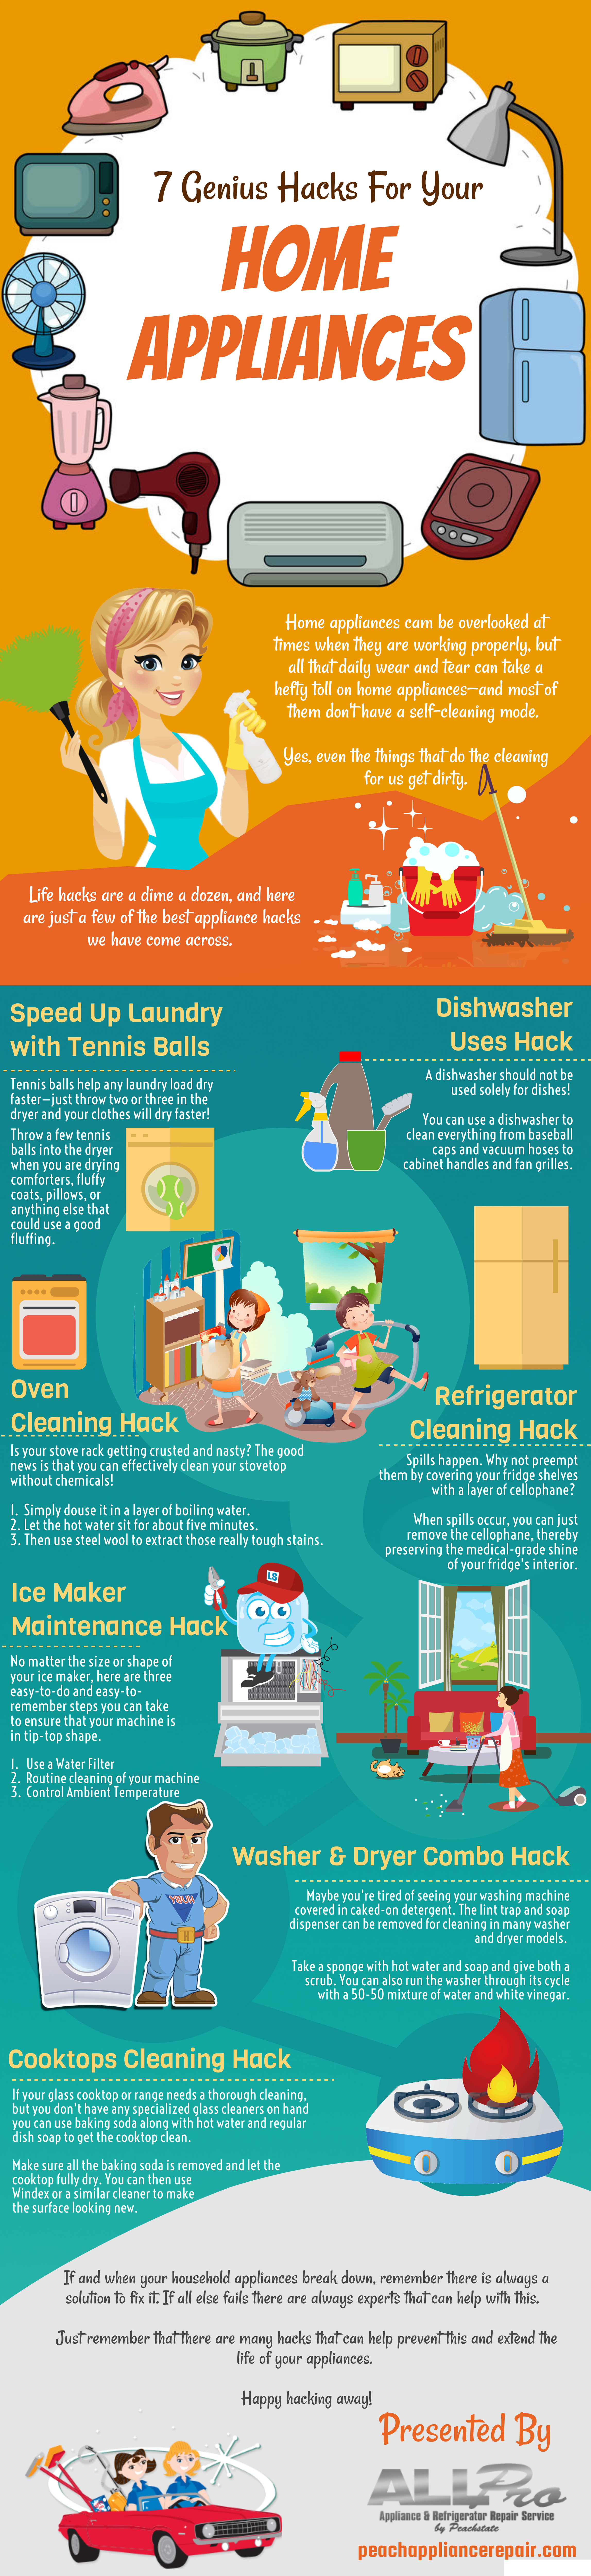 7 Genius Hacks For Your Home Appliances